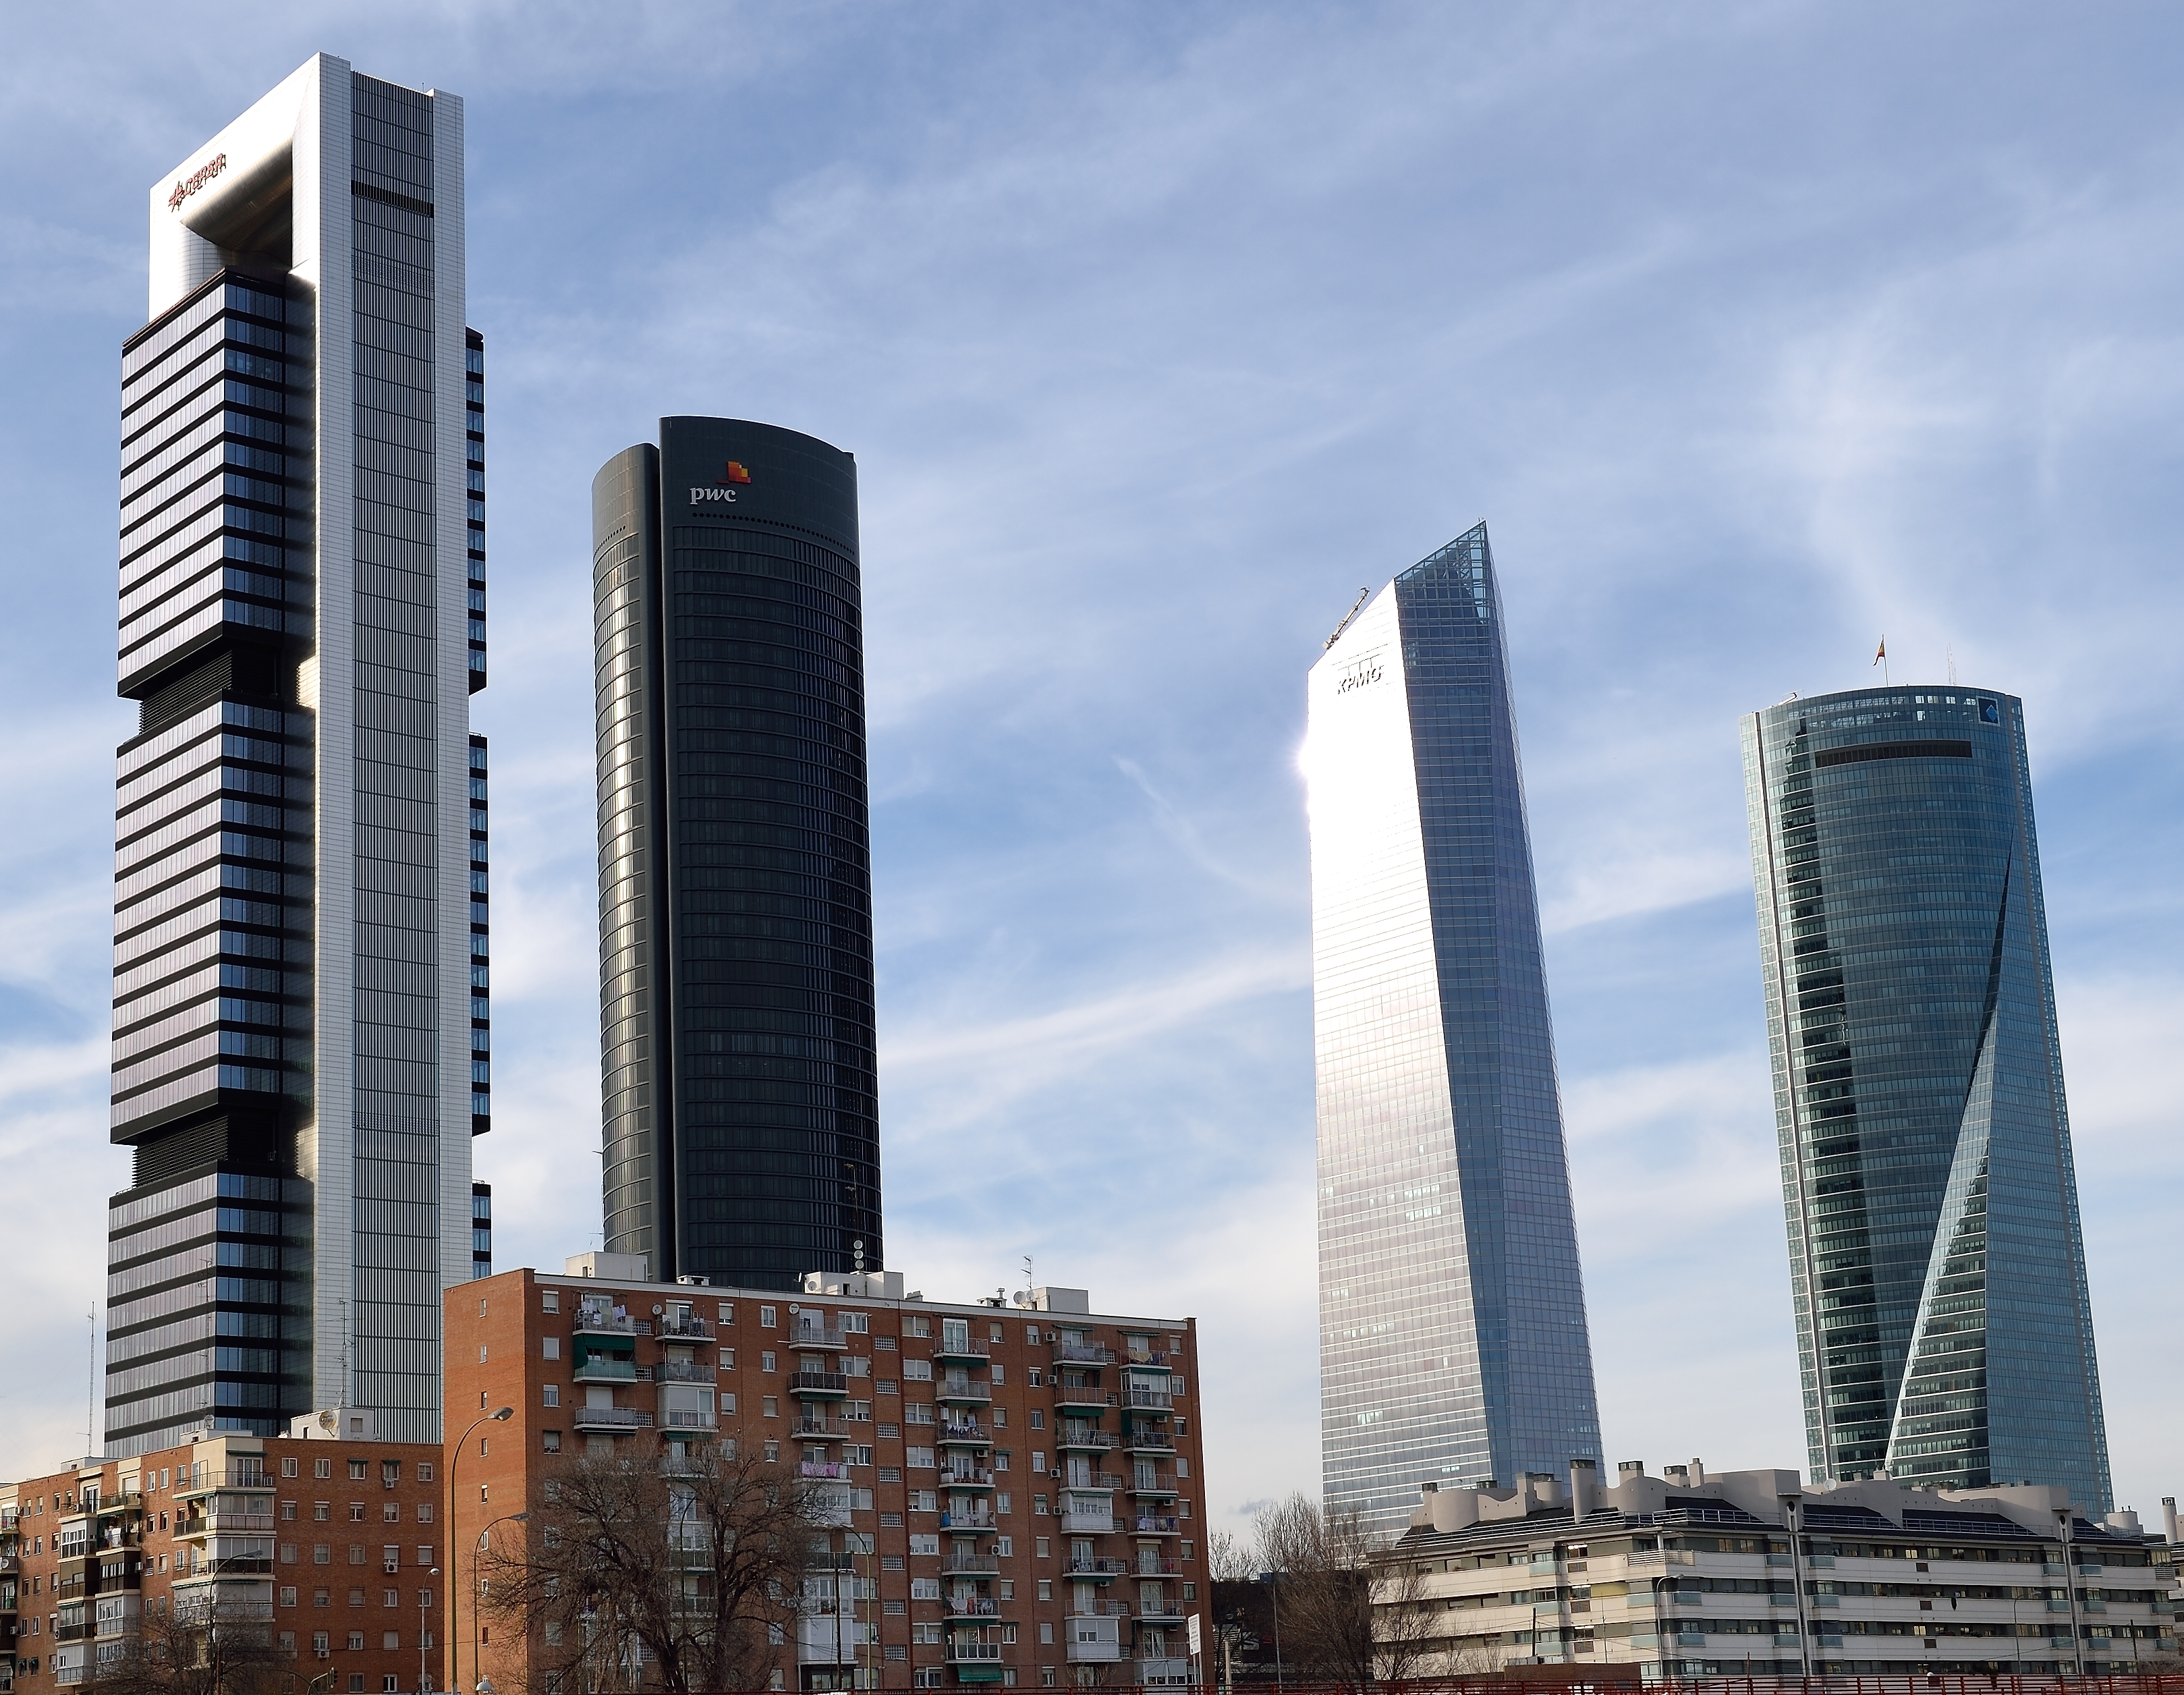 File:Cuatro Torres from Chamartin station in Madrid (32949958965).jpg